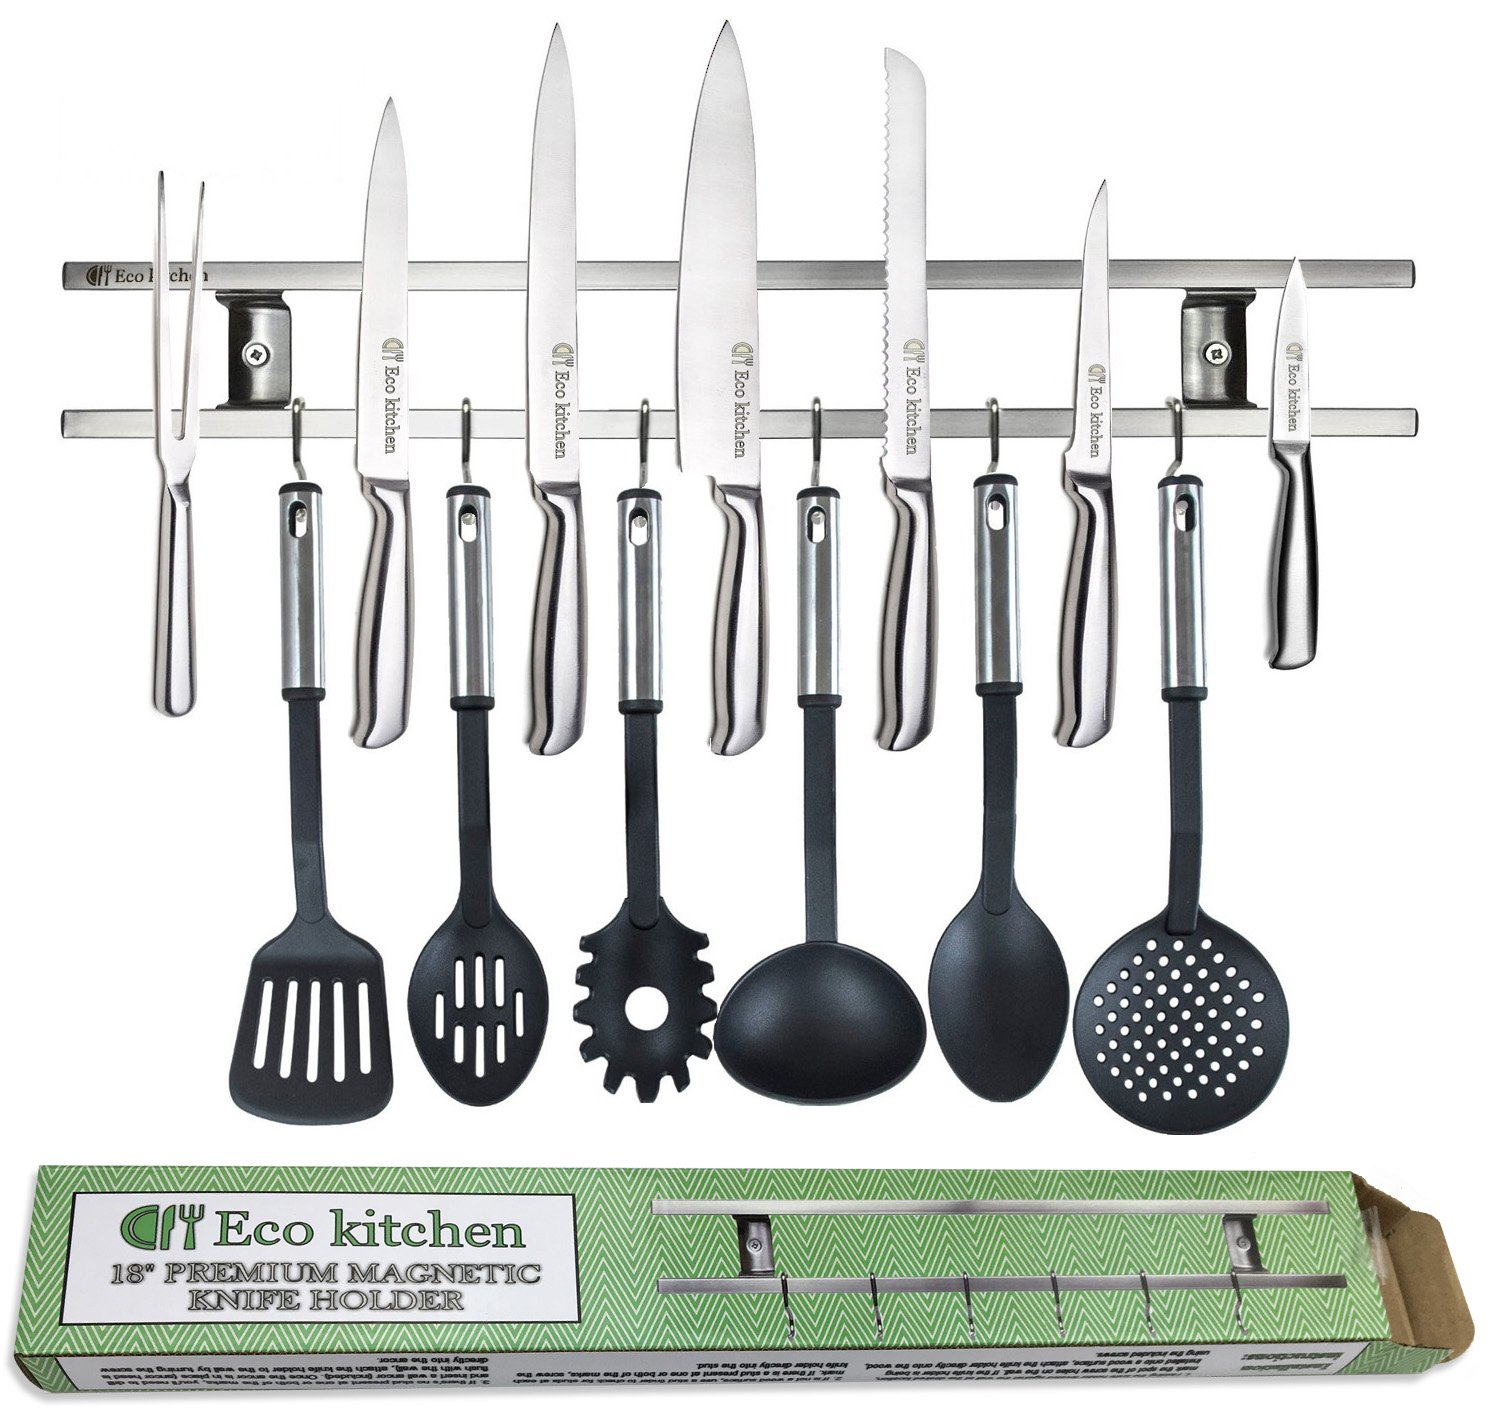 ECO KITCHEN 18 Inch Stainless Steel Magnetic Knife Holder - Magnetic Knife Strip with 6 Hooks - Knife Rack/Knife Bar for Kitchen Utensils and Cooking Sets - Save Your Space Now!